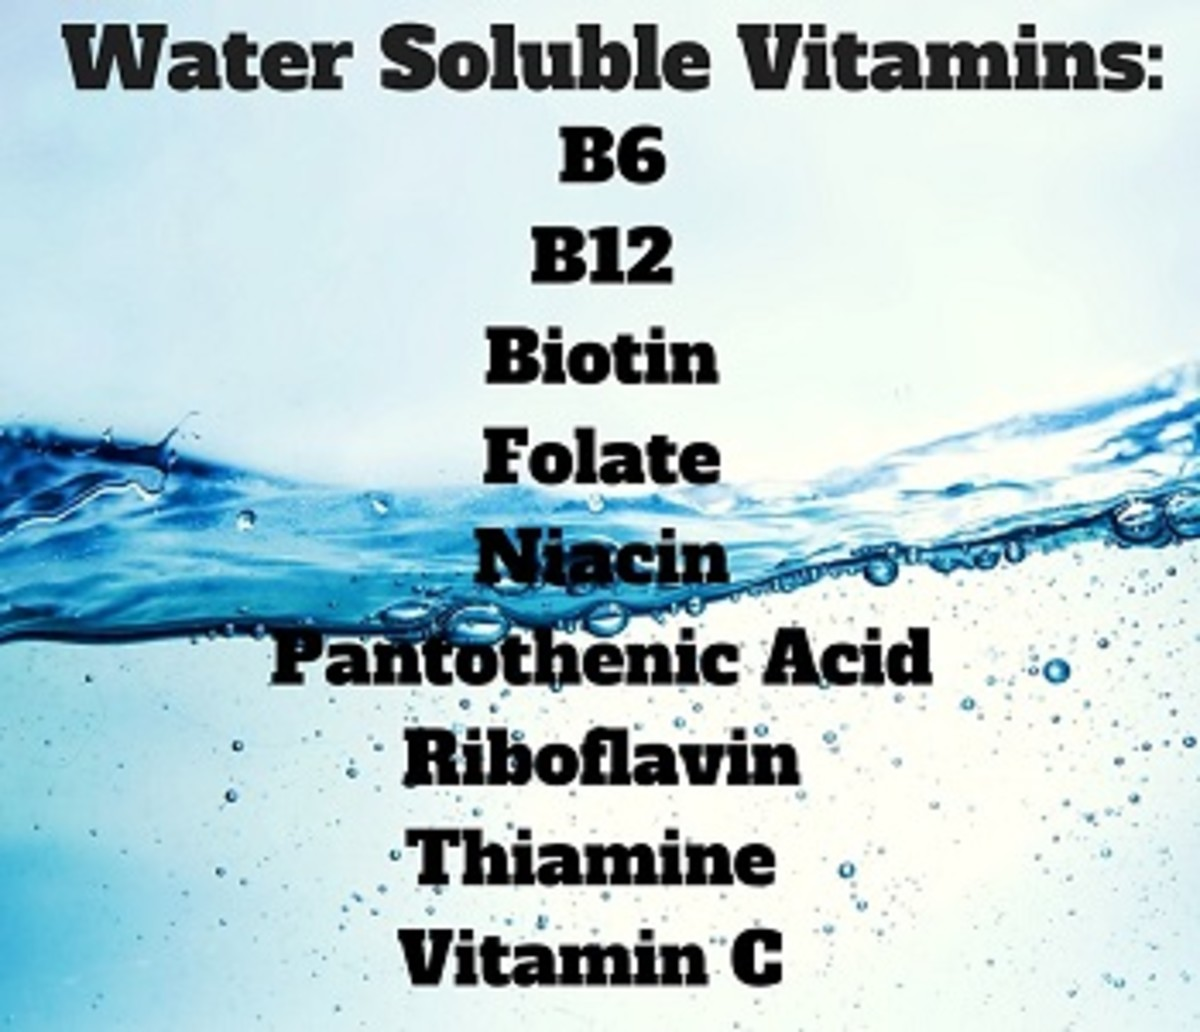 fat and water soluble vitamins | hubpages, Human Body